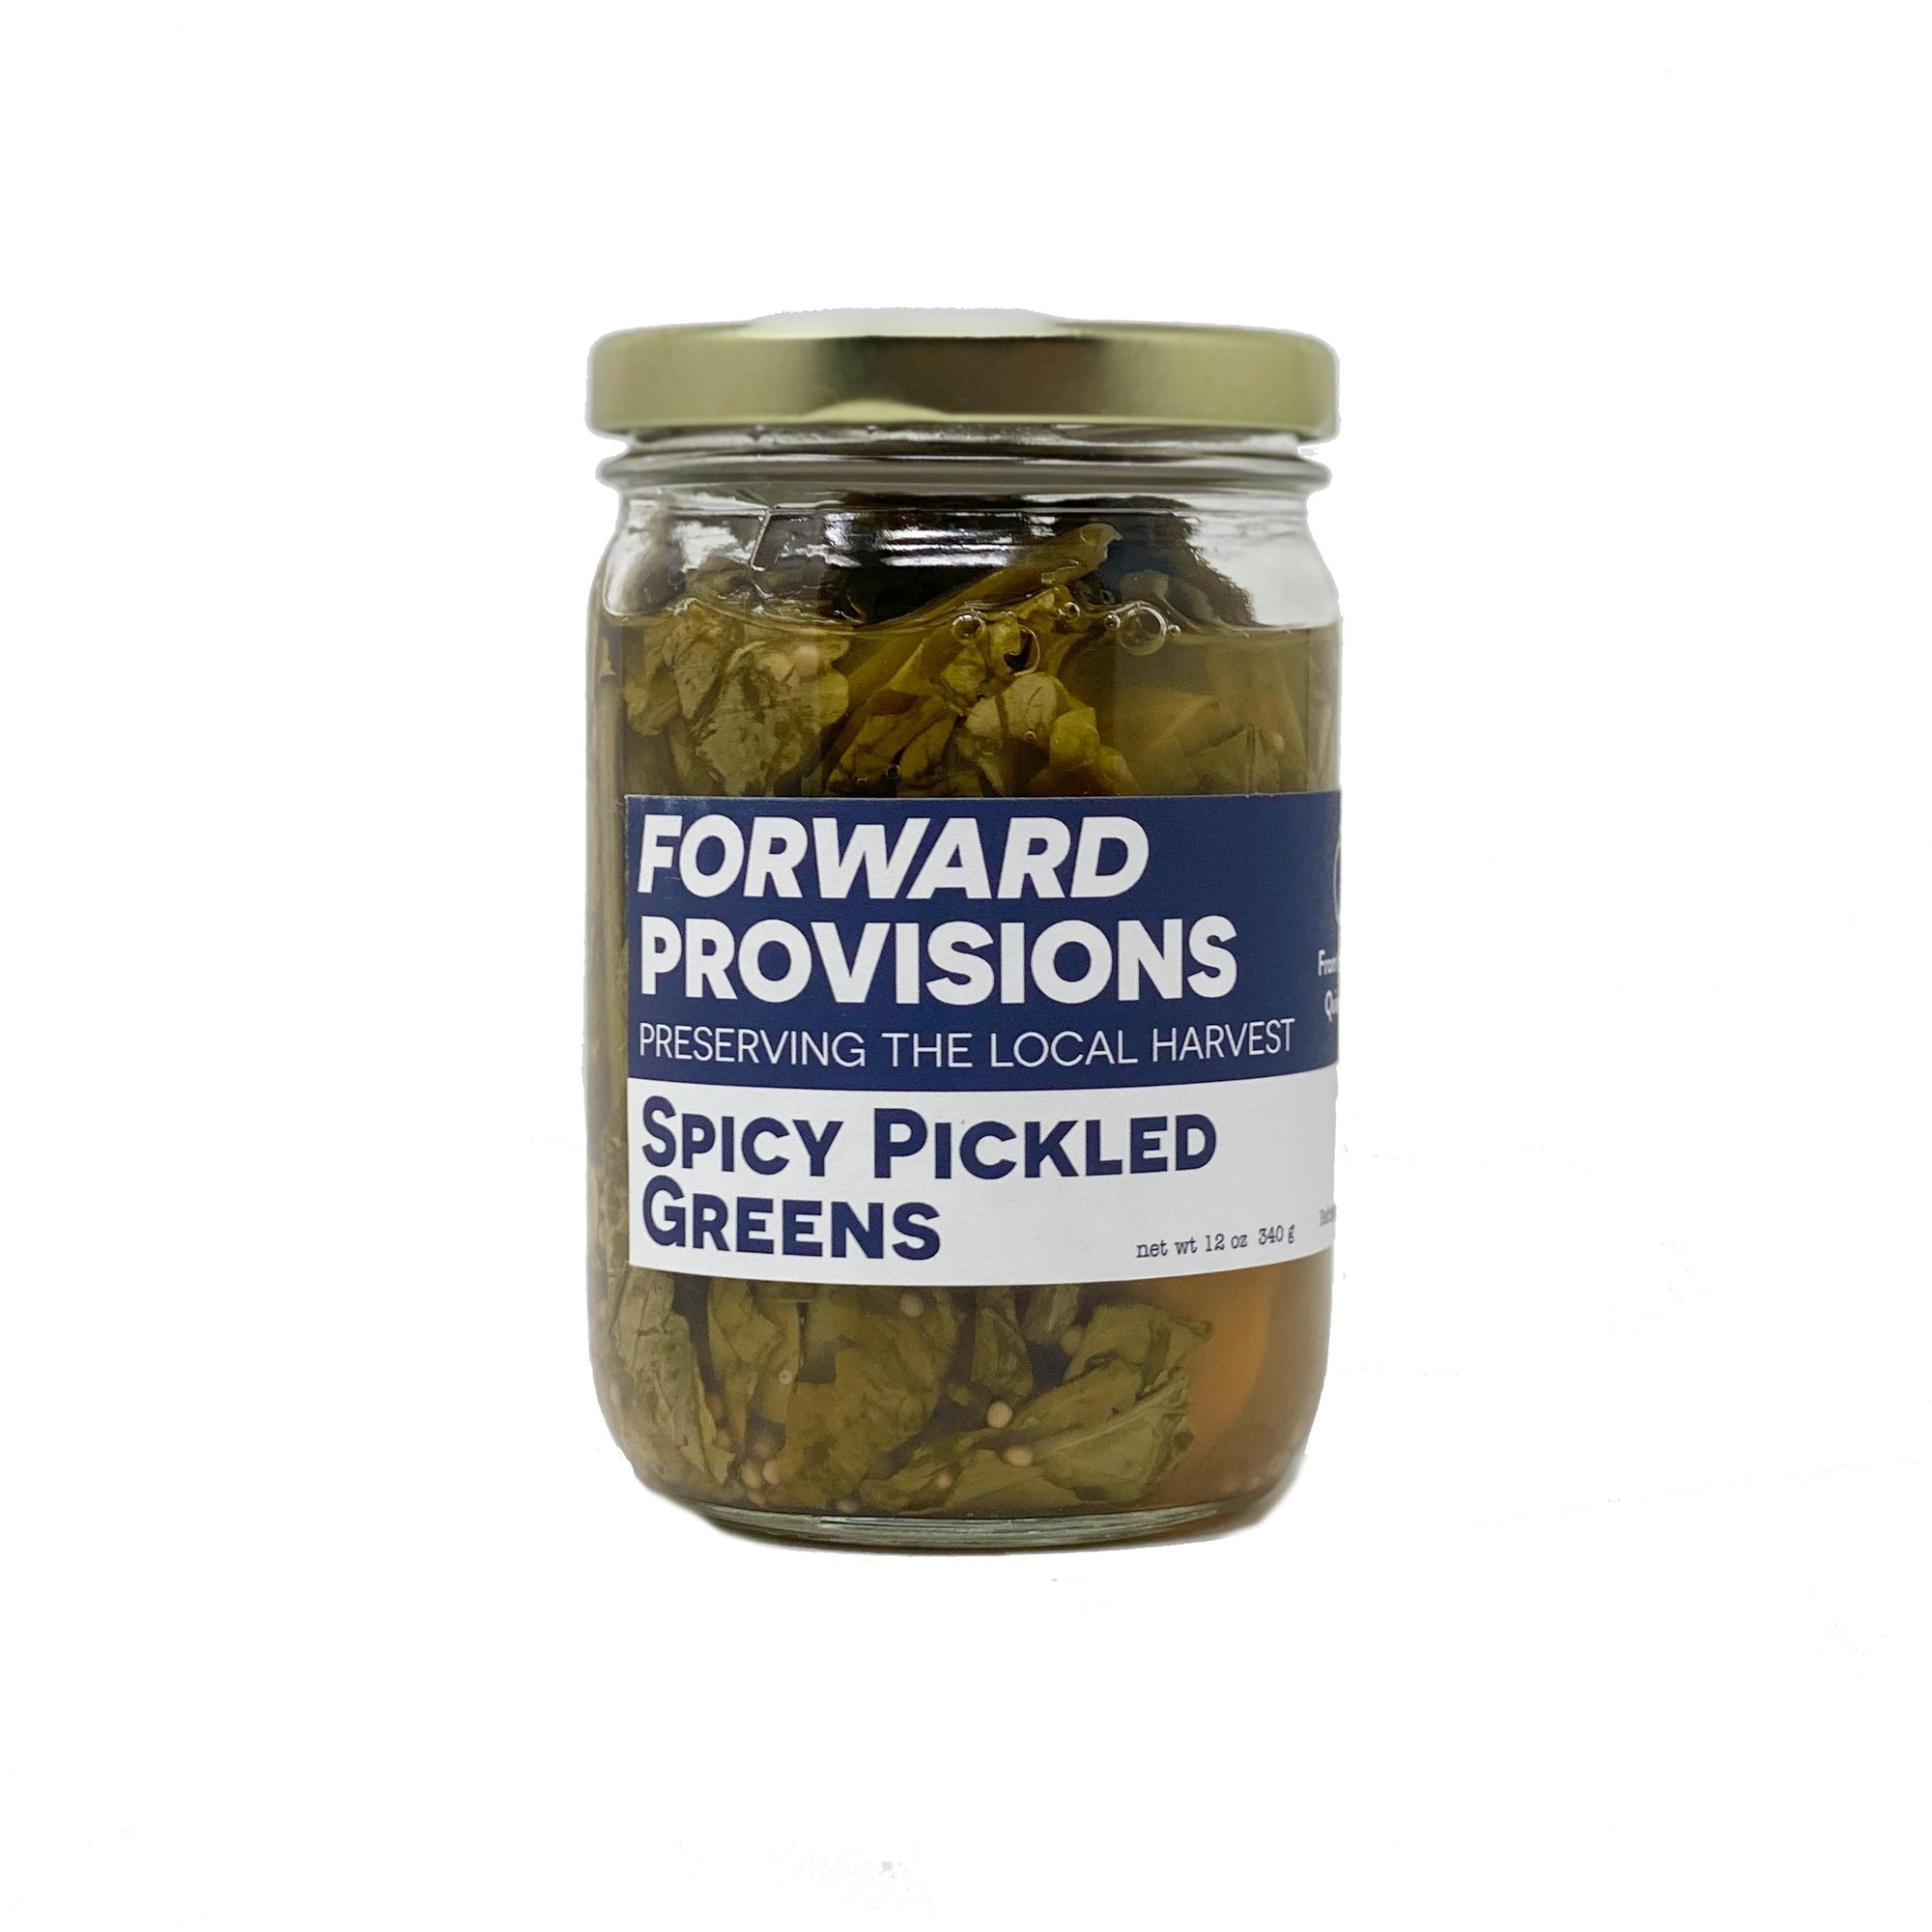 Spicy Pickled Greens